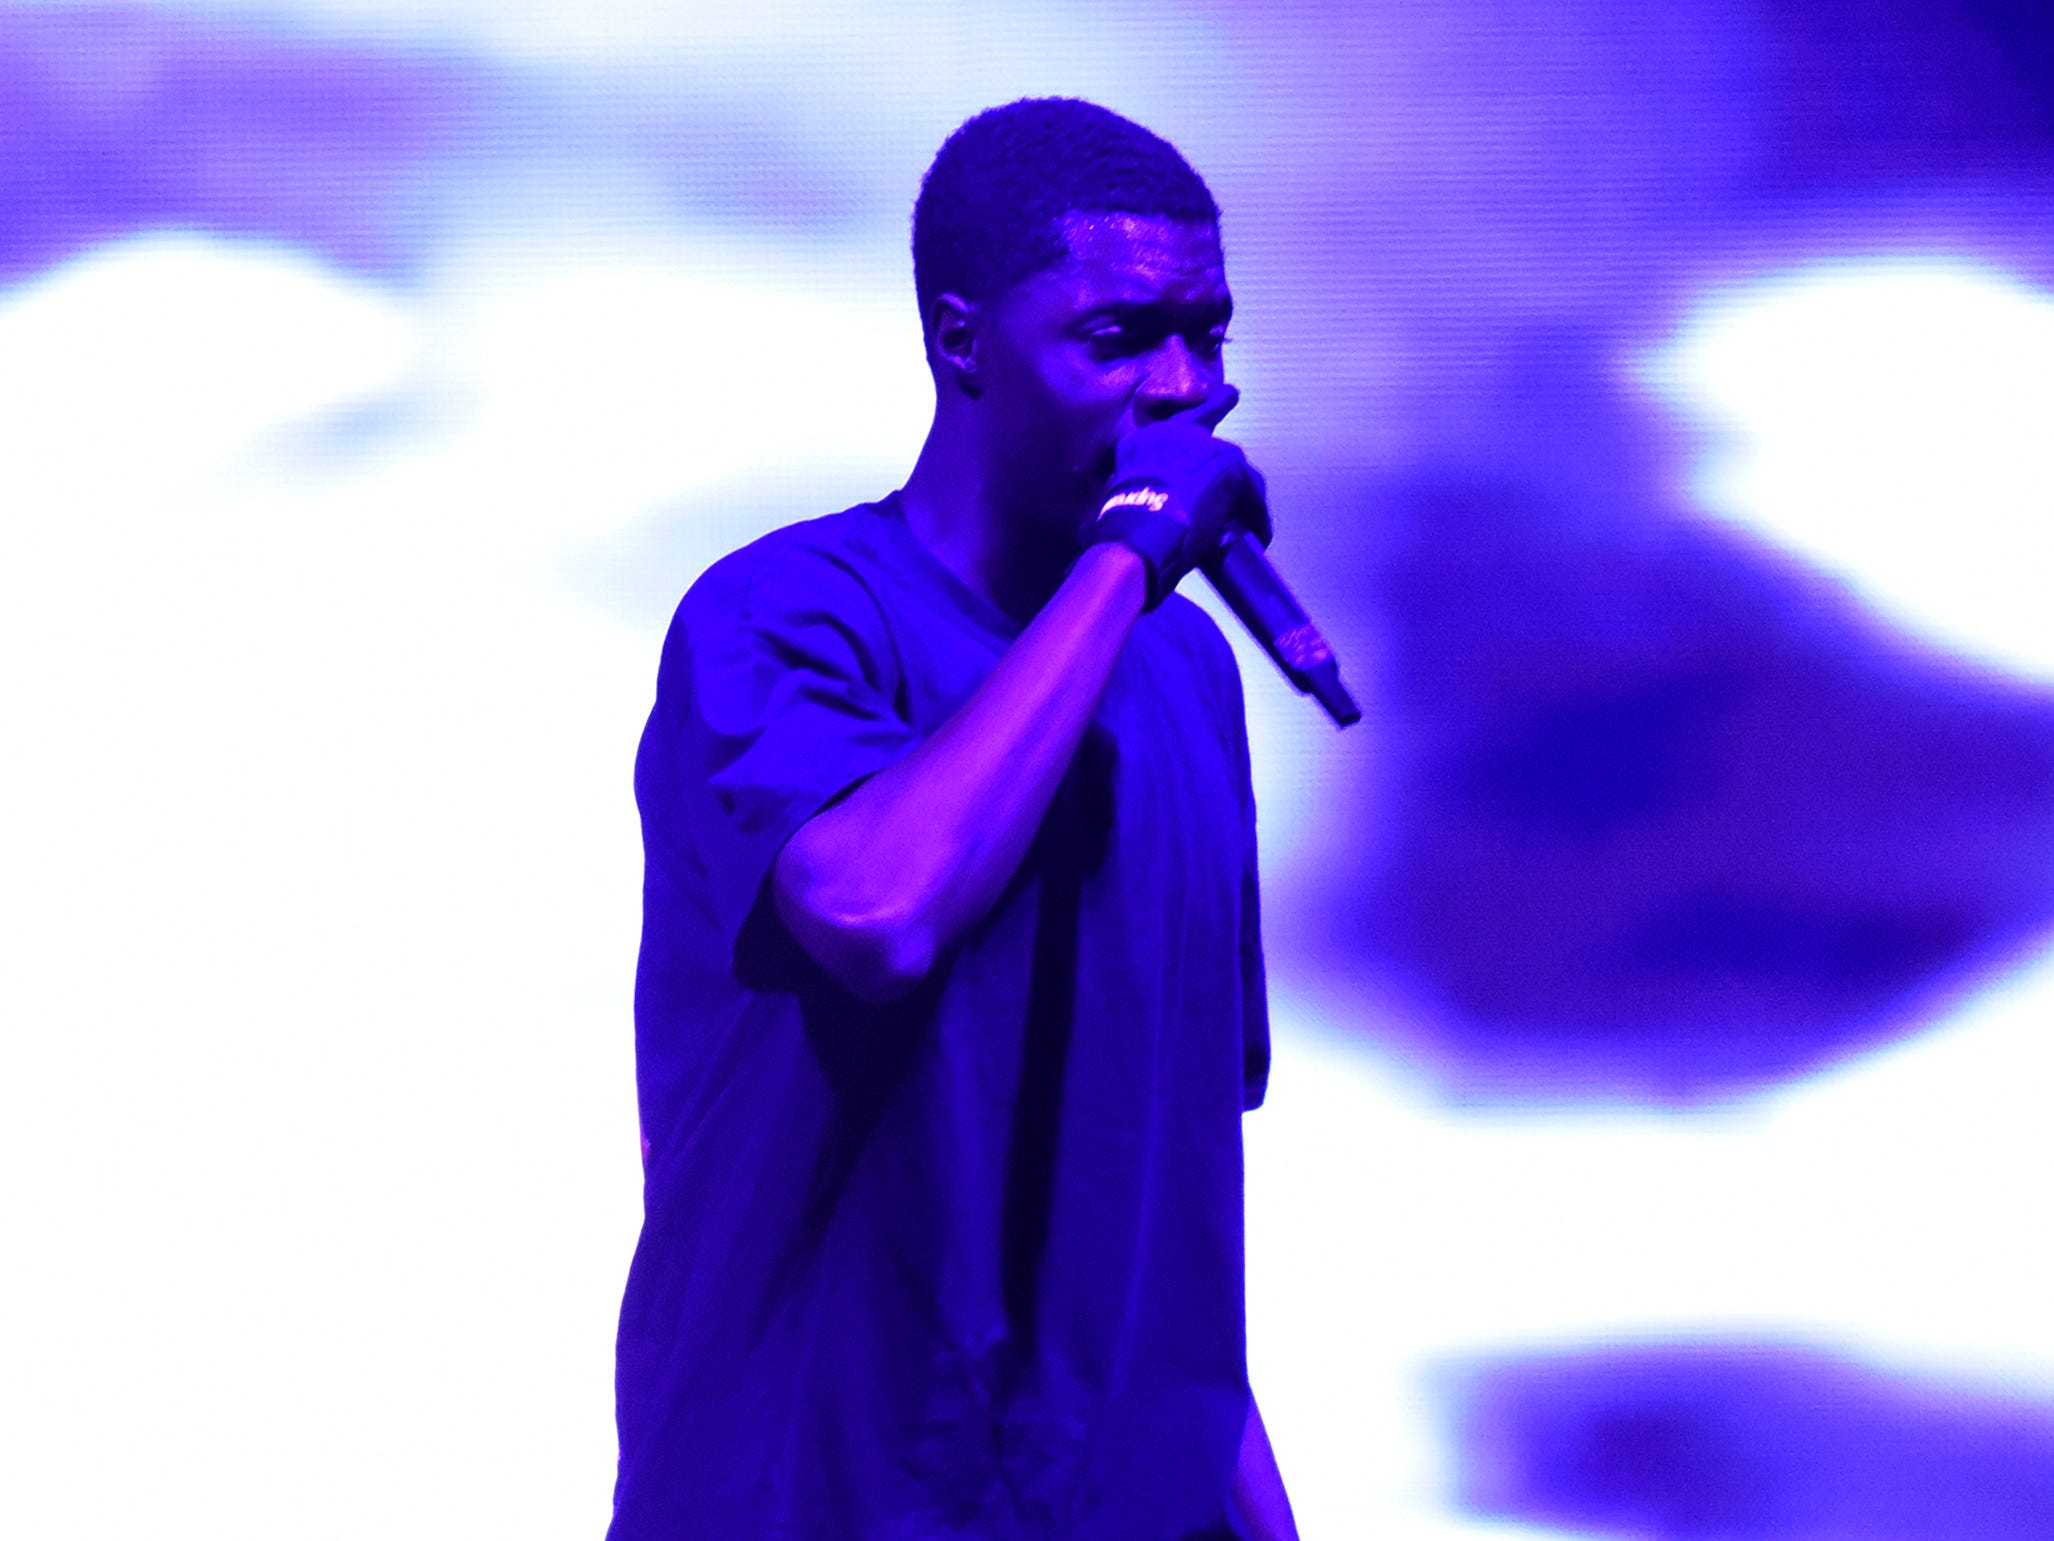 Sheck Wes performs at Little Caesars Arena in Detroit, Wednesday, Dec. 5, 2018.  (Jose Juarez/Special to Detroit News)